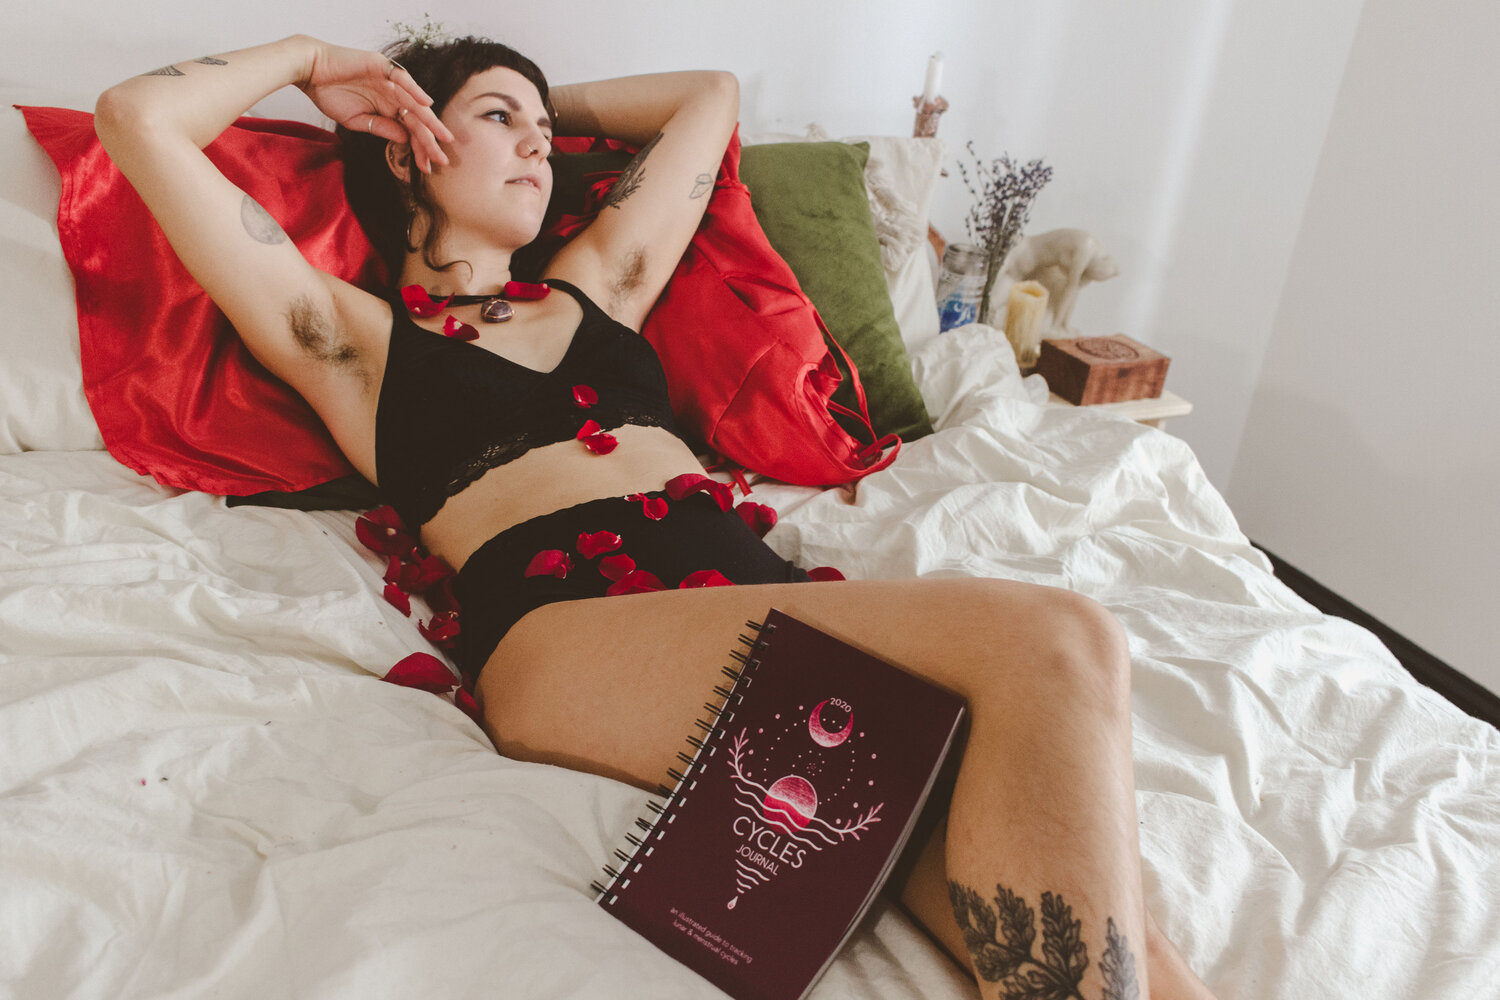 photography by Devon Dadoly of Manifold Studios for Cycles Journal